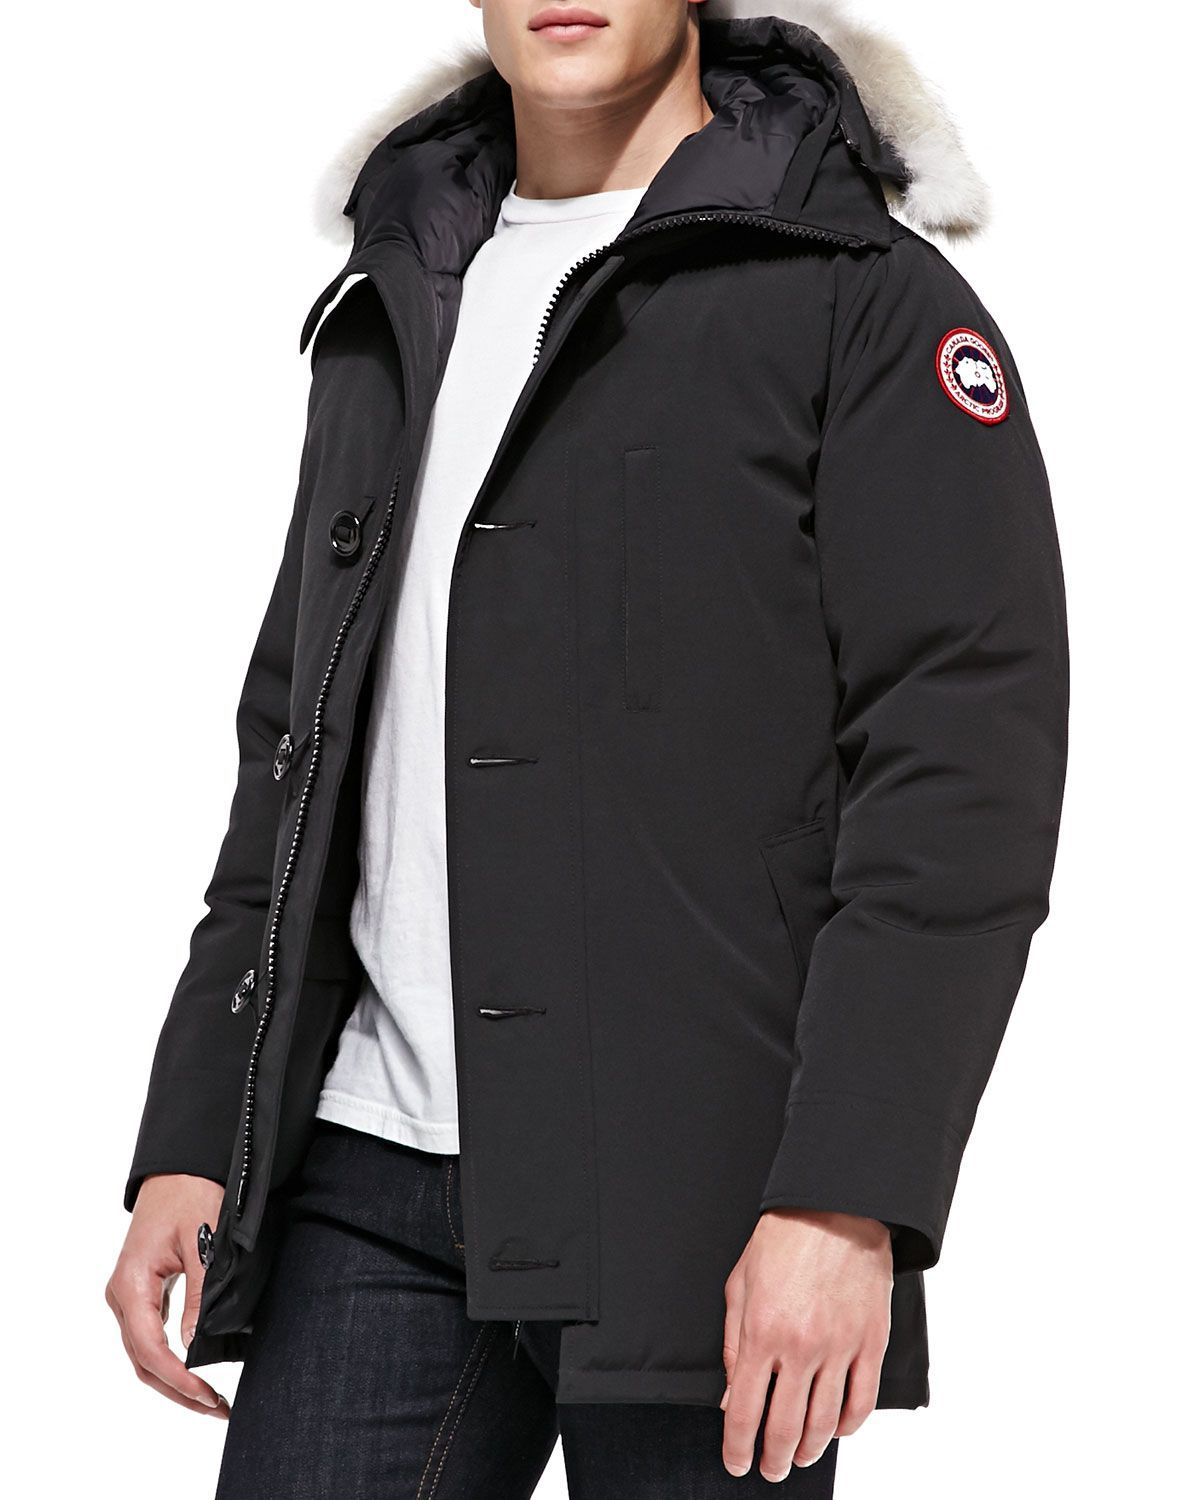 Canada Goose Only 89 For Gift Get It Immediately Chateau Arctic Tech Parka With Fur Hood Black Canada Goose Fur Hood Jacket Canada Goose Mens Canada Goose